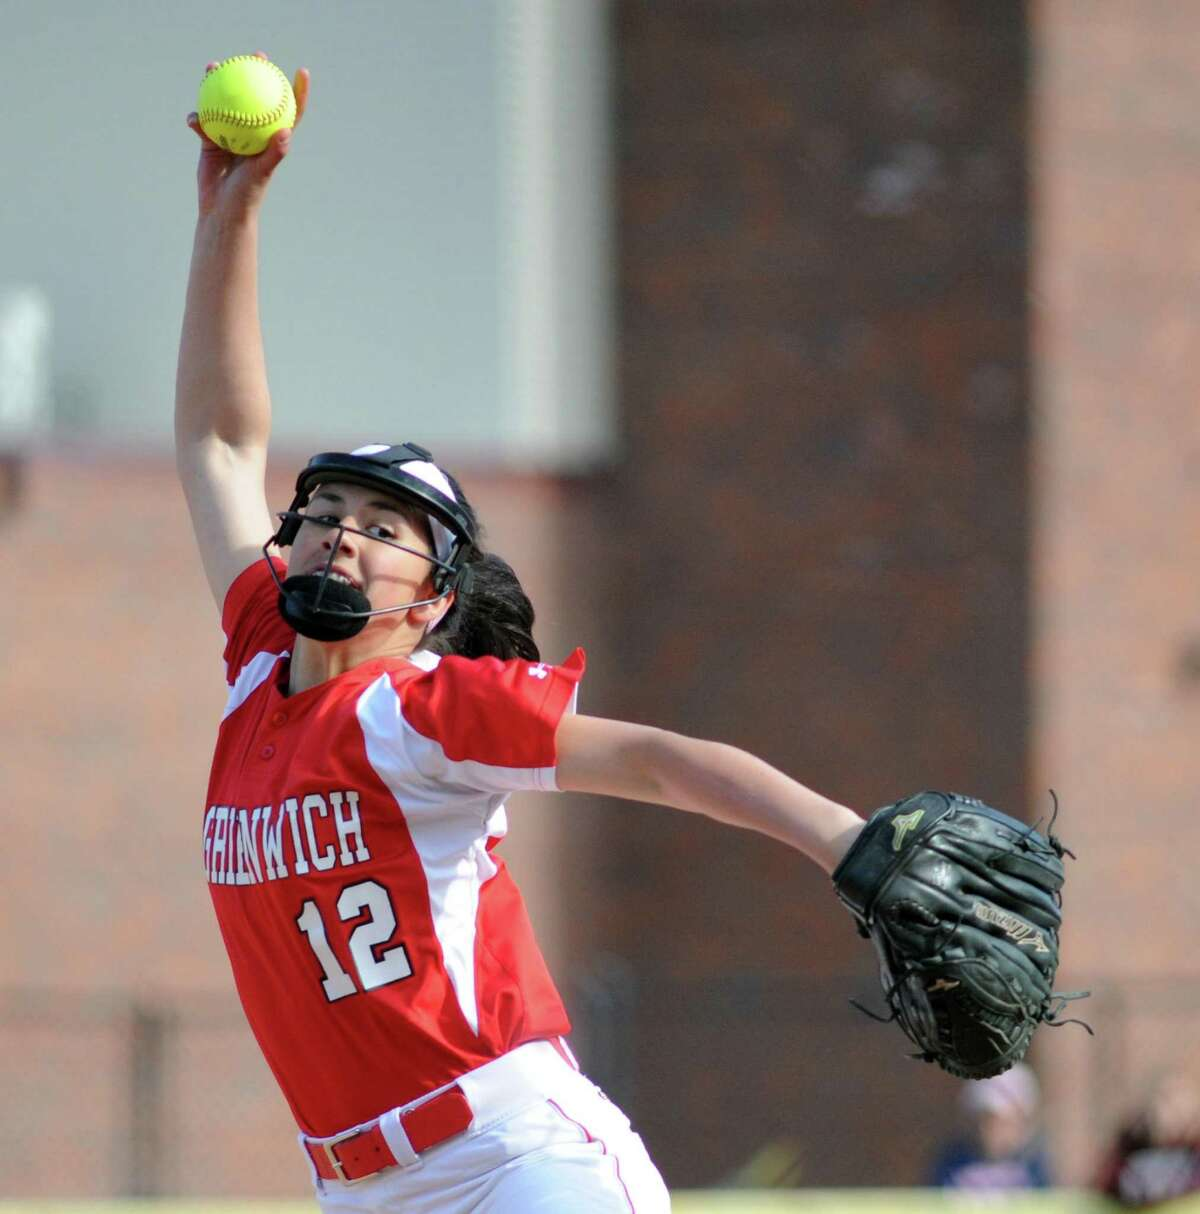 Greenwich pitcher Sophia Prieto throws during the high school softball game between Greenwich High School and Brien McMahon High School at Greenwich, Conn., Thursday, April 13, 2017.